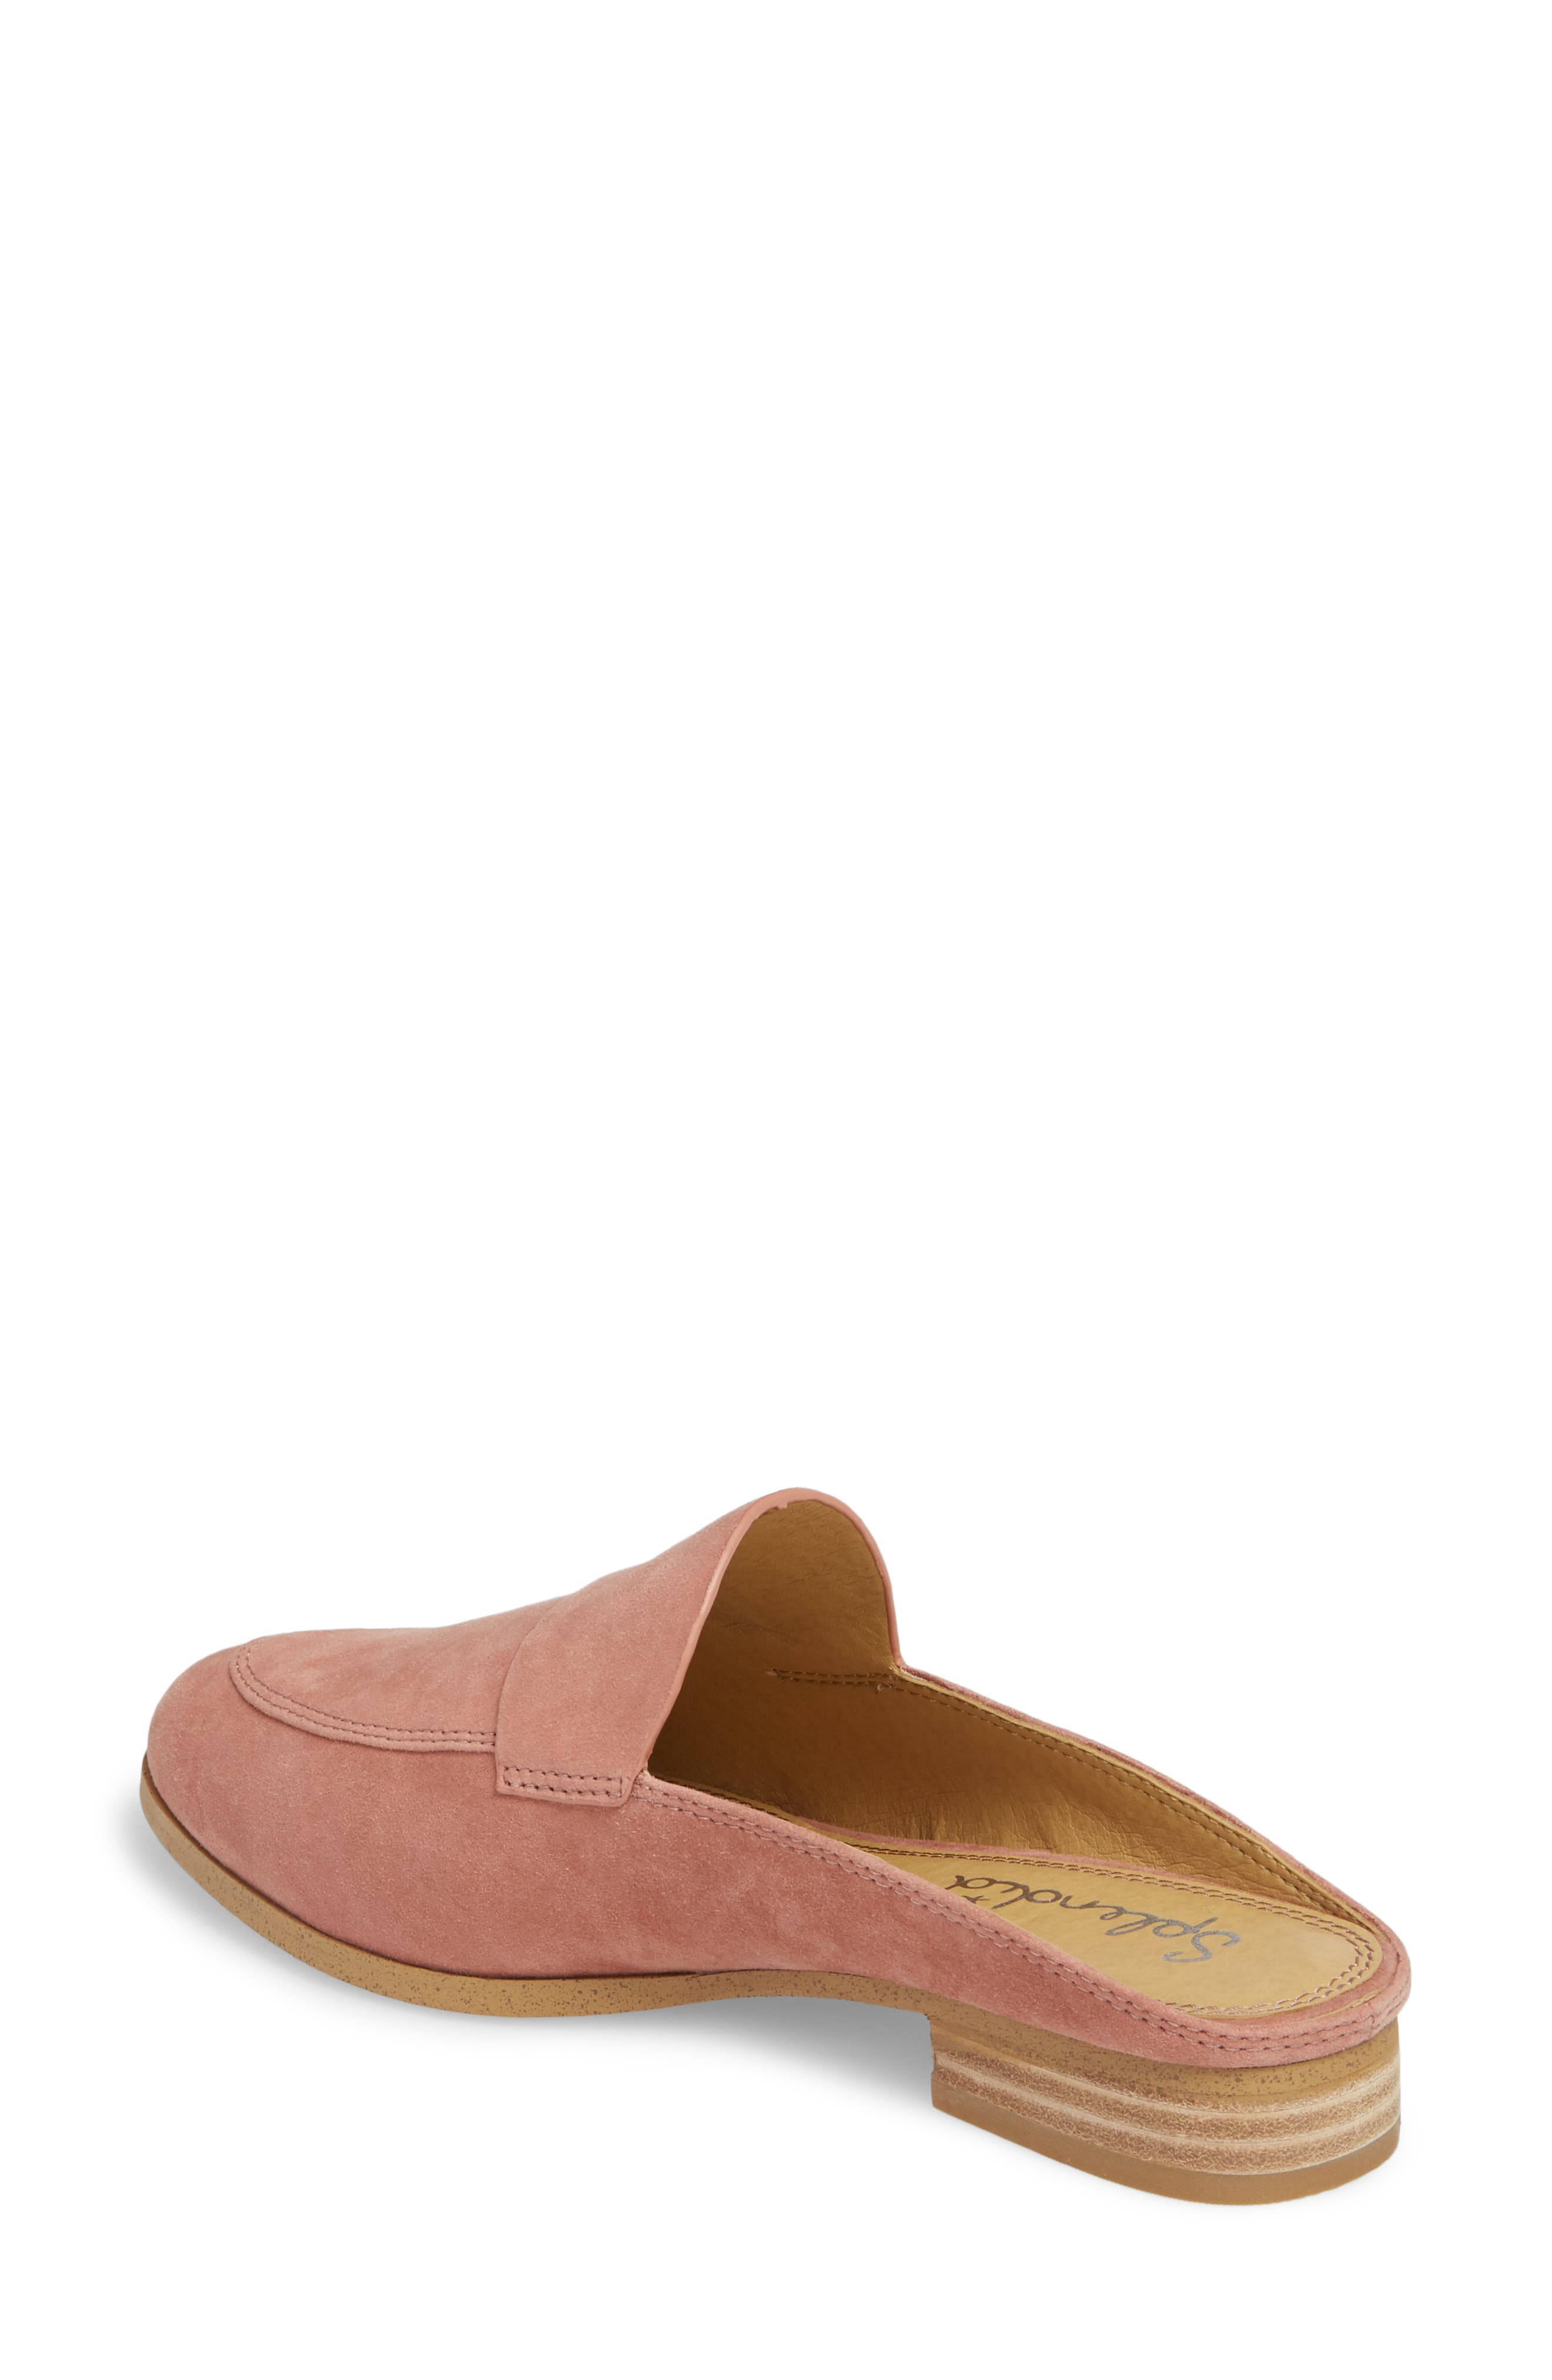 Nima Loafer Mule,                             Alternate thumbnail 2, color,                             ROSE TAUPE SUEDE